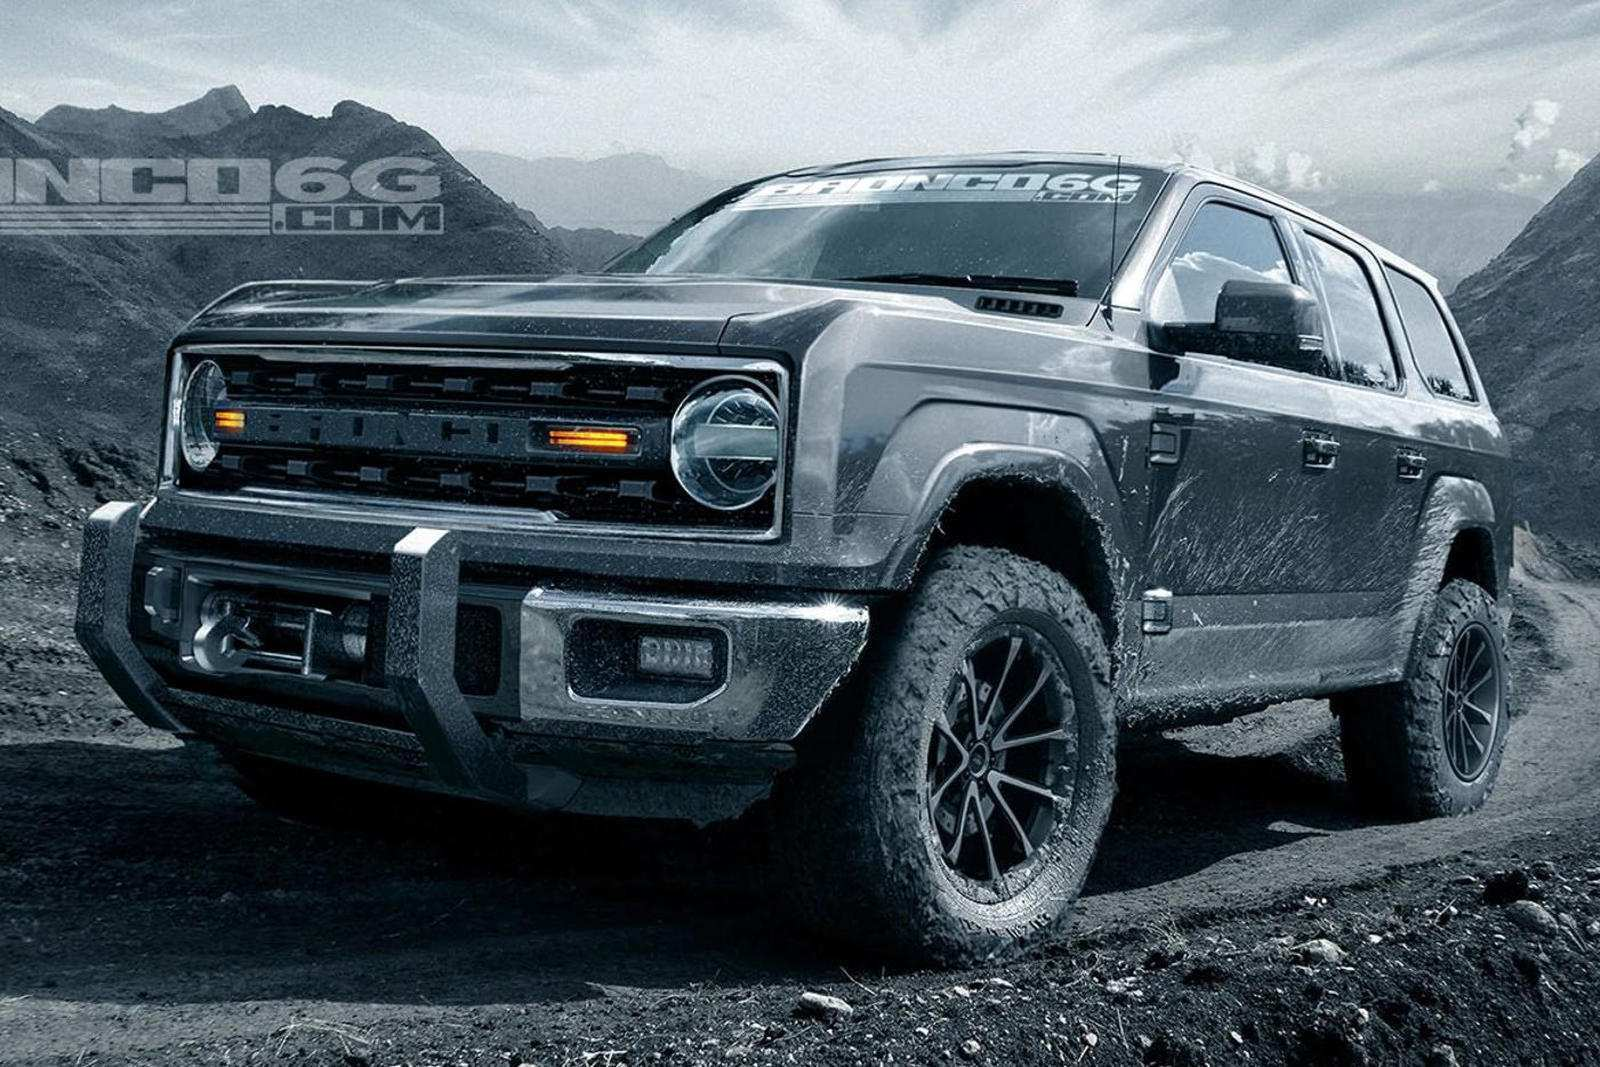 82 Best Ford Bronco 2020 Release Date Concept